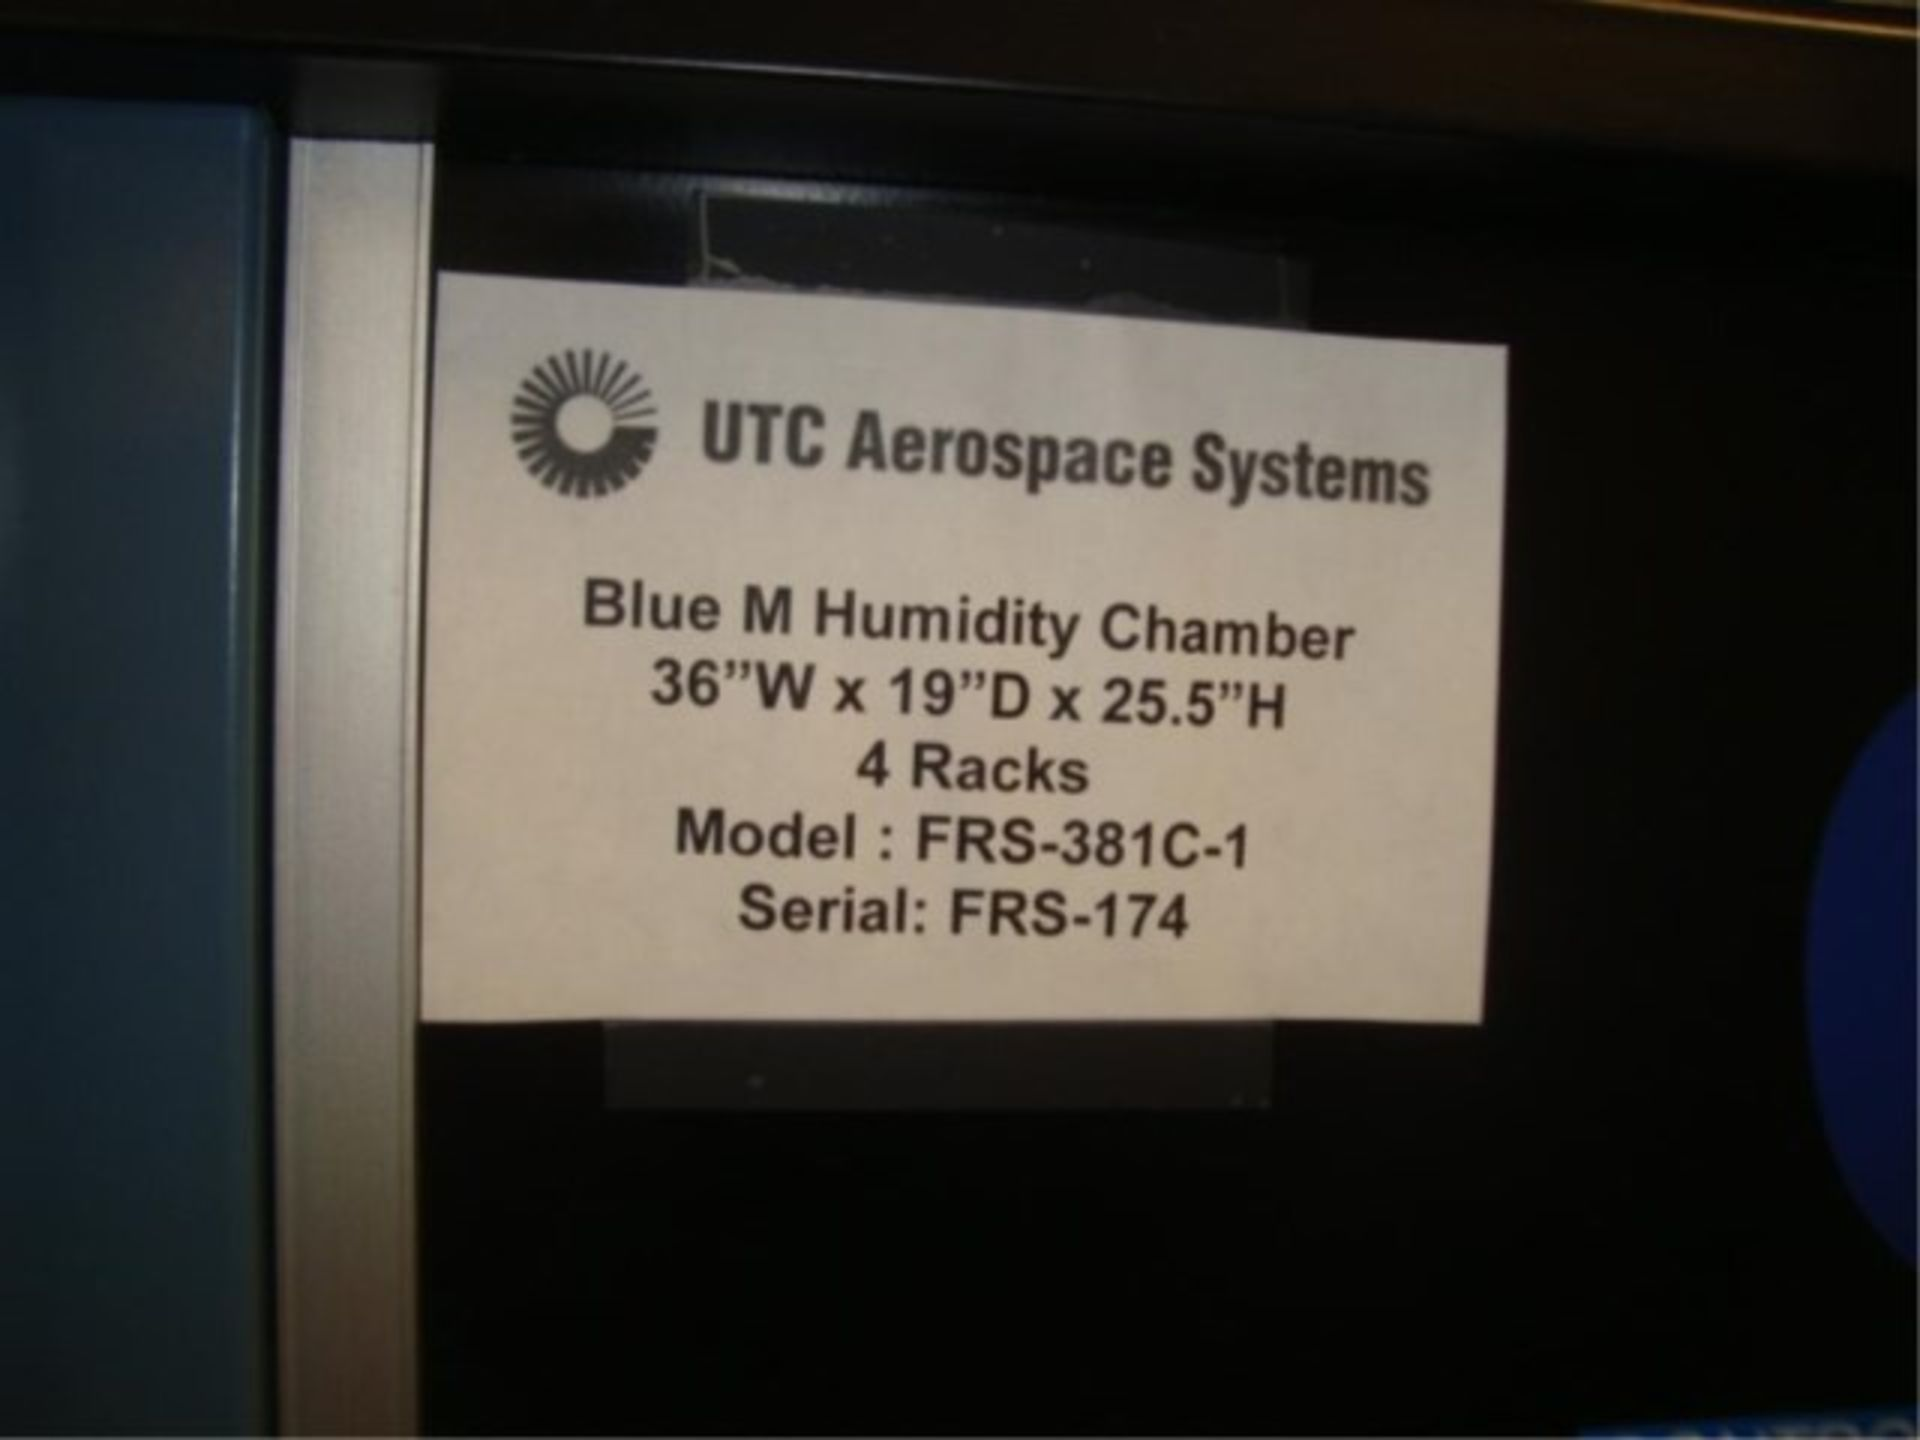 Humidity Test Chamber - Image 11 of 12